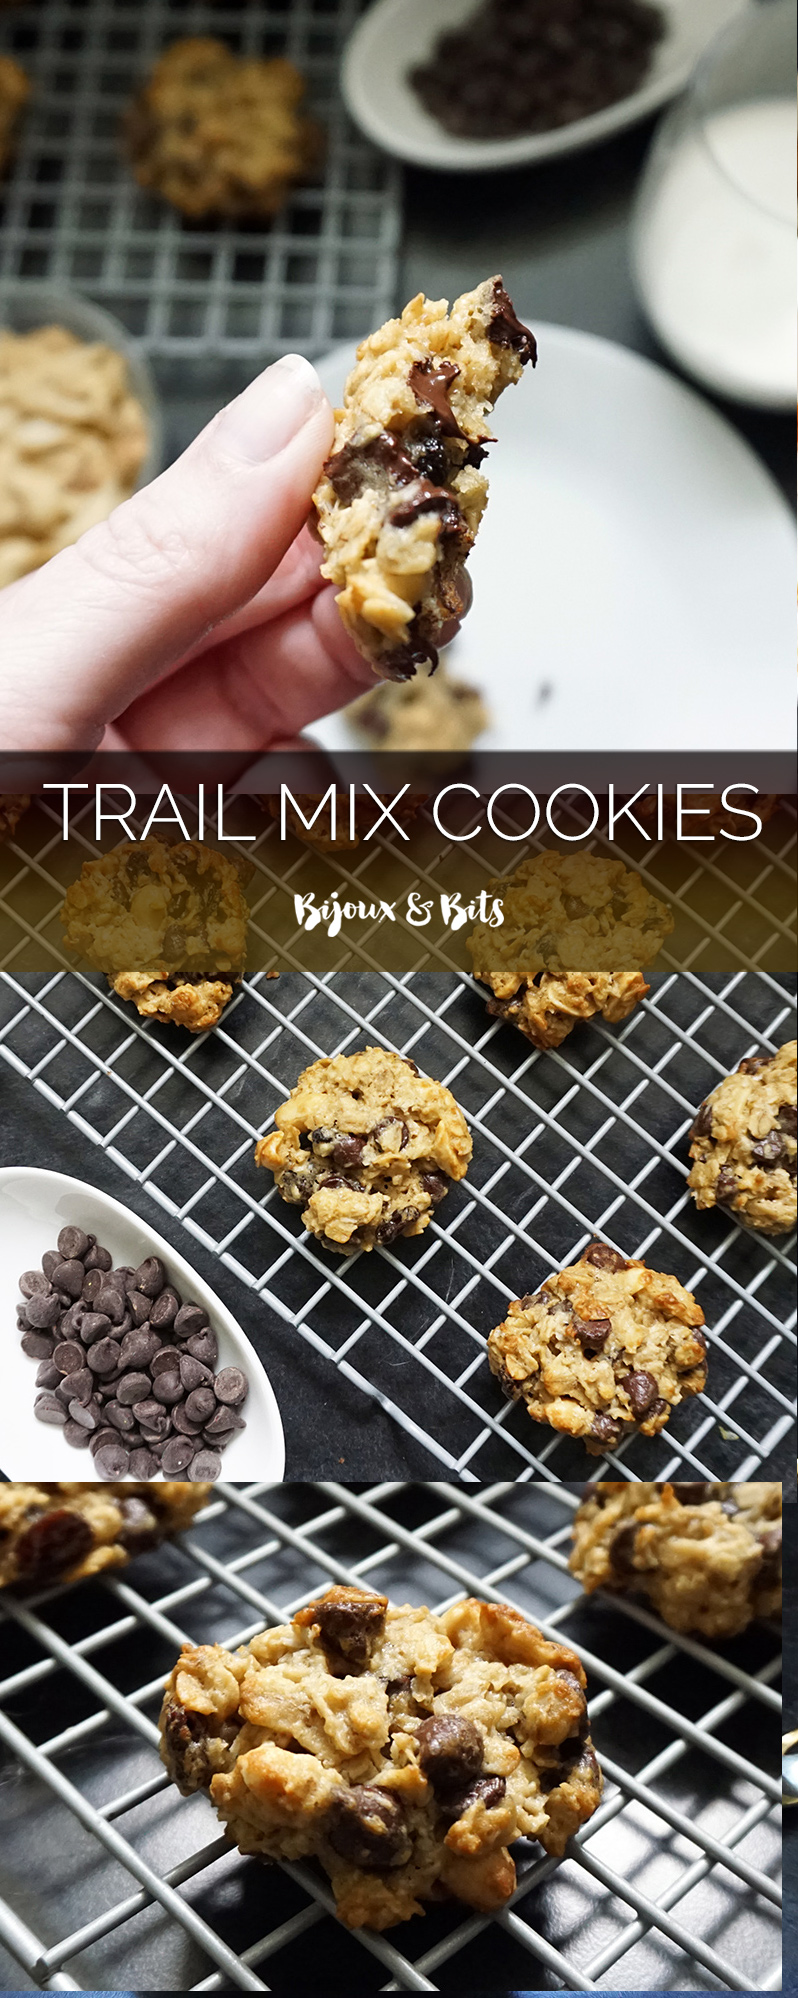 Trail mix cookies from @bijouxandbits #cookies #oatmeal